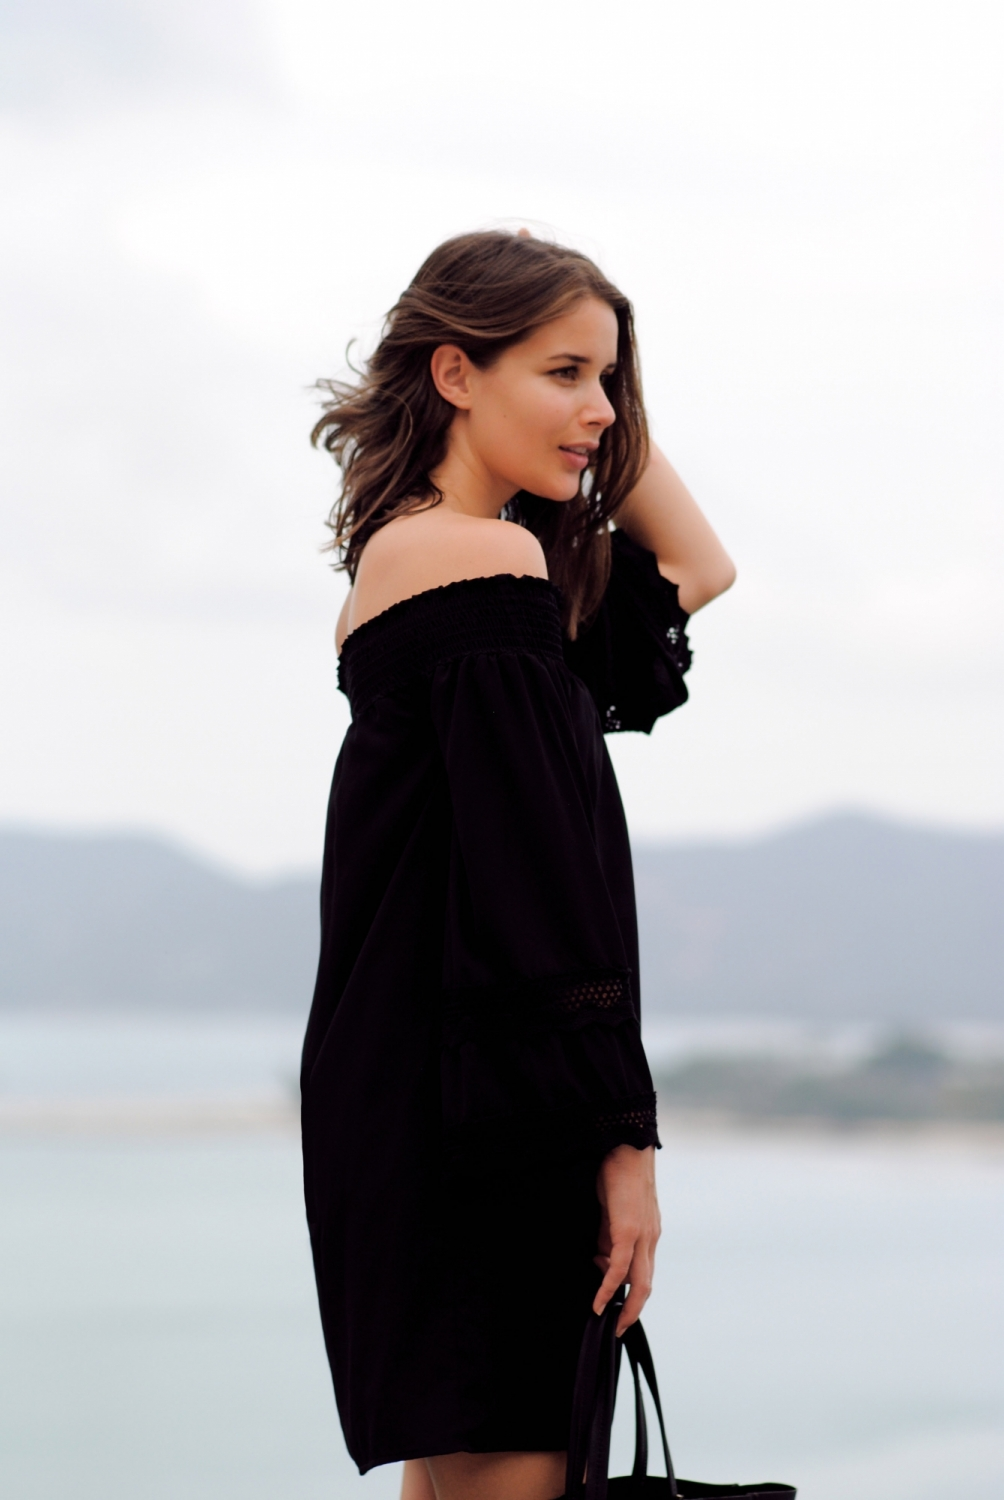 harper and harley_off the shoulder black dress_travel_thailand_koh samui_02